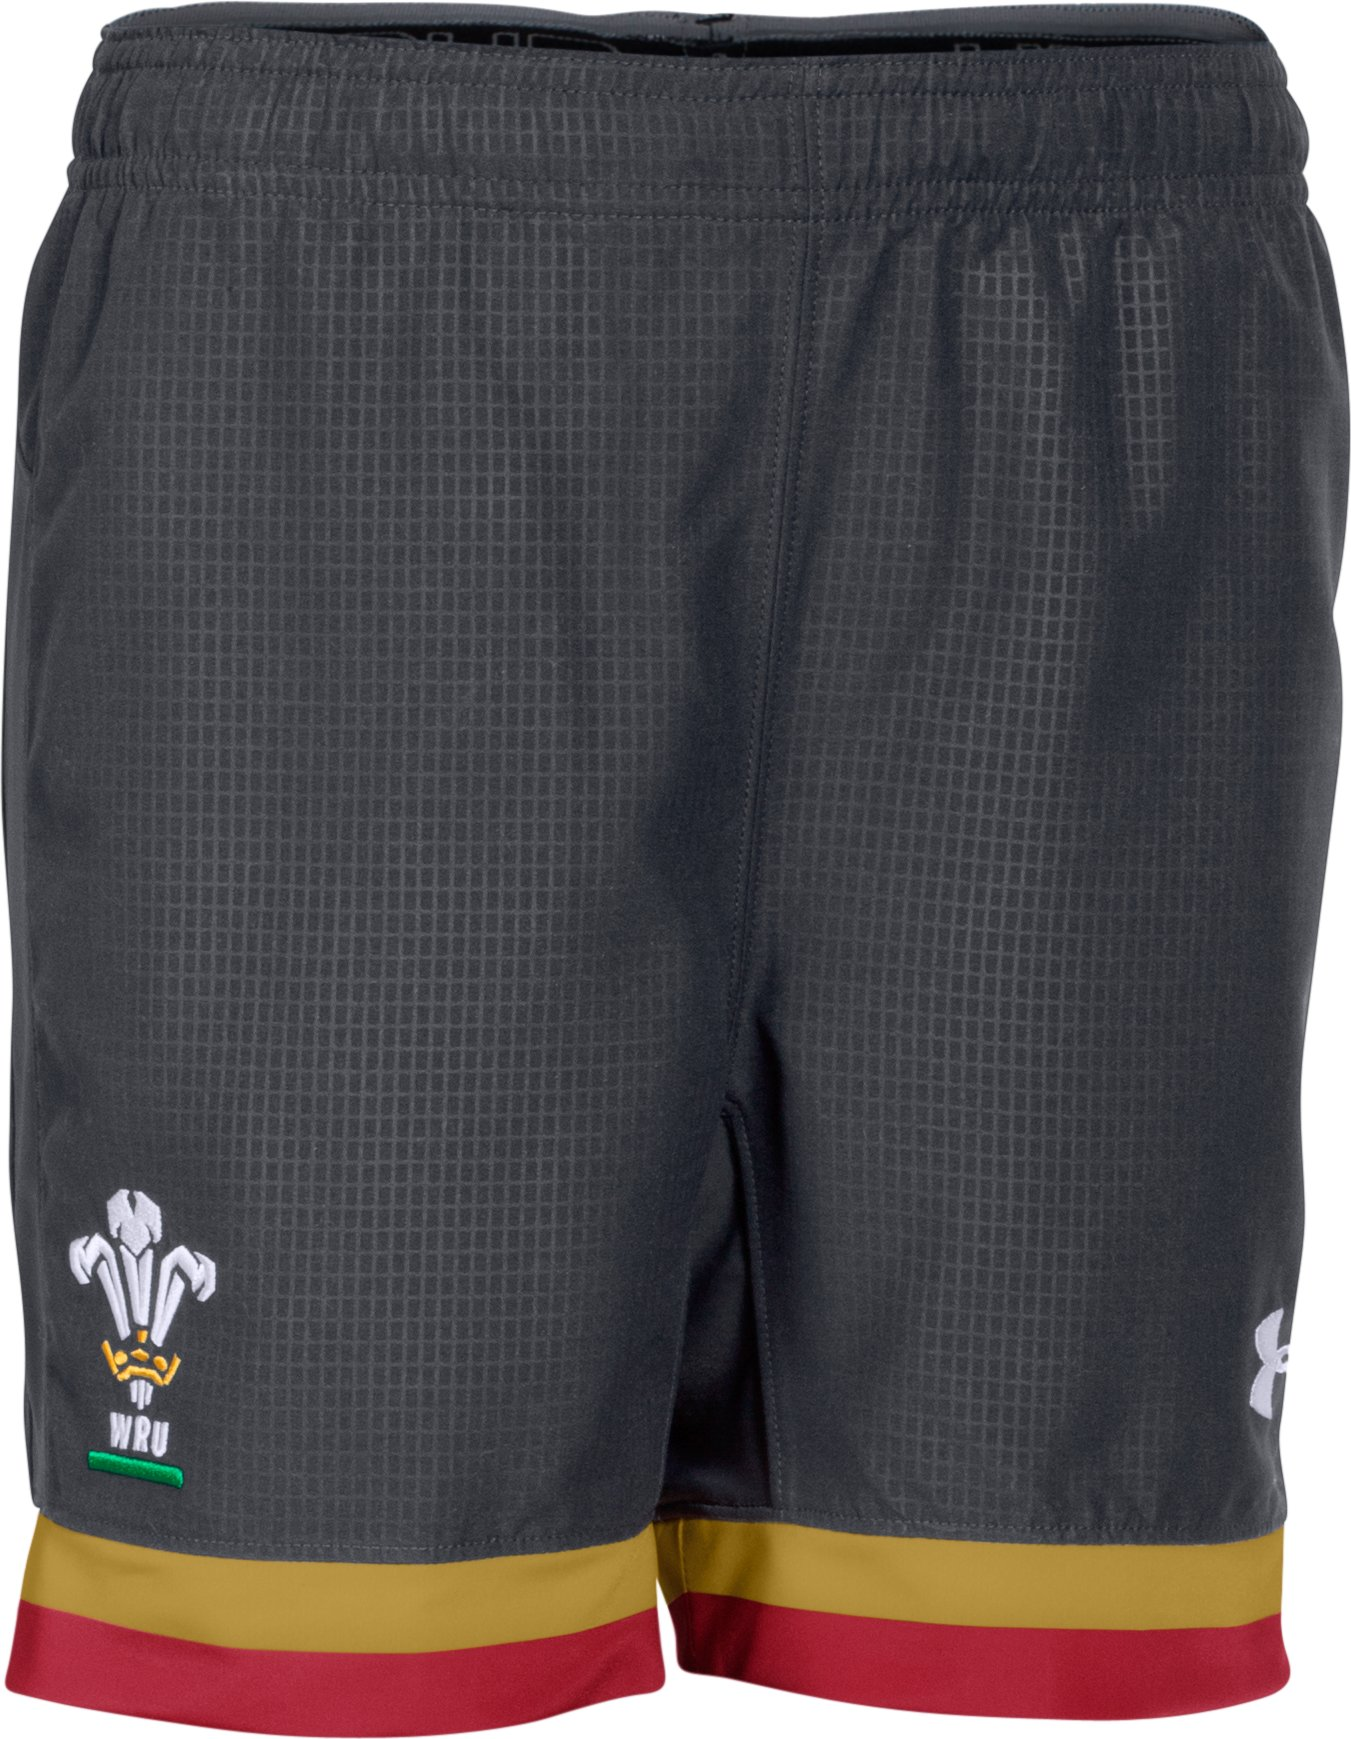 Boys' WRU Supporters 15/16 Shorts, ANTHRACITE, undefined